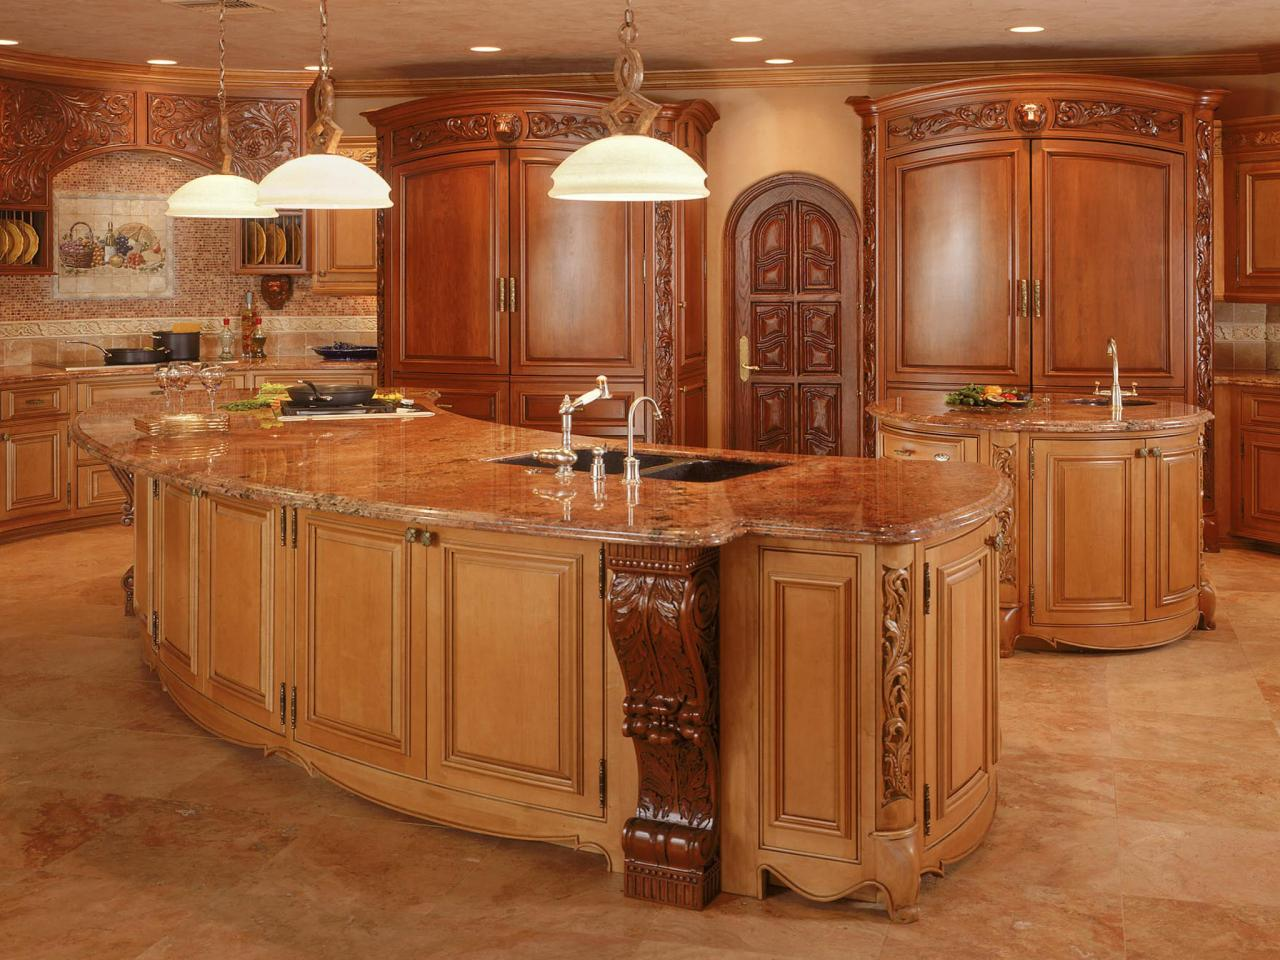 Designer Kitchen Cabinets Victorian Kitchen Design Pictures Ideas And Tips From Hgtv